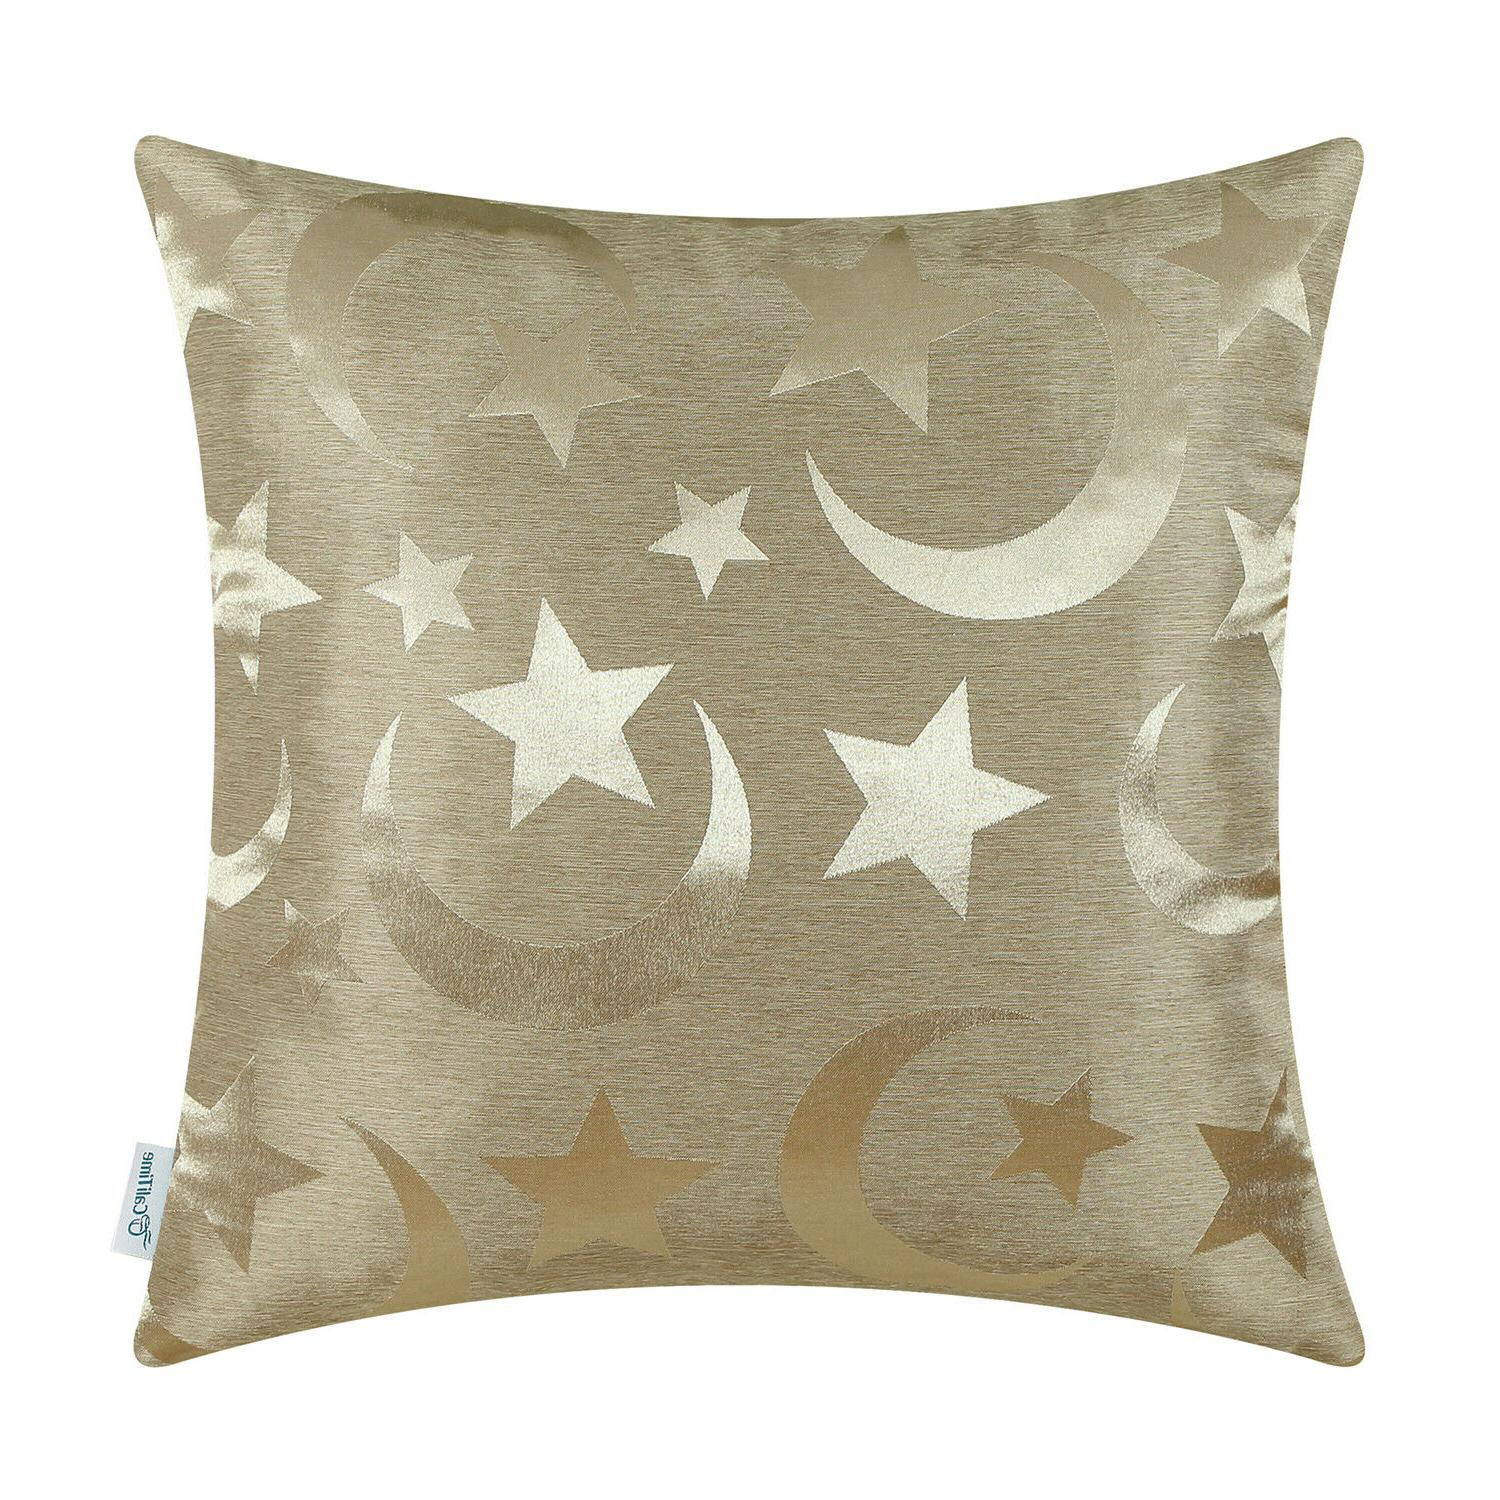 CaliTime Throw Pillow Cases for Home Decor Stars Moon